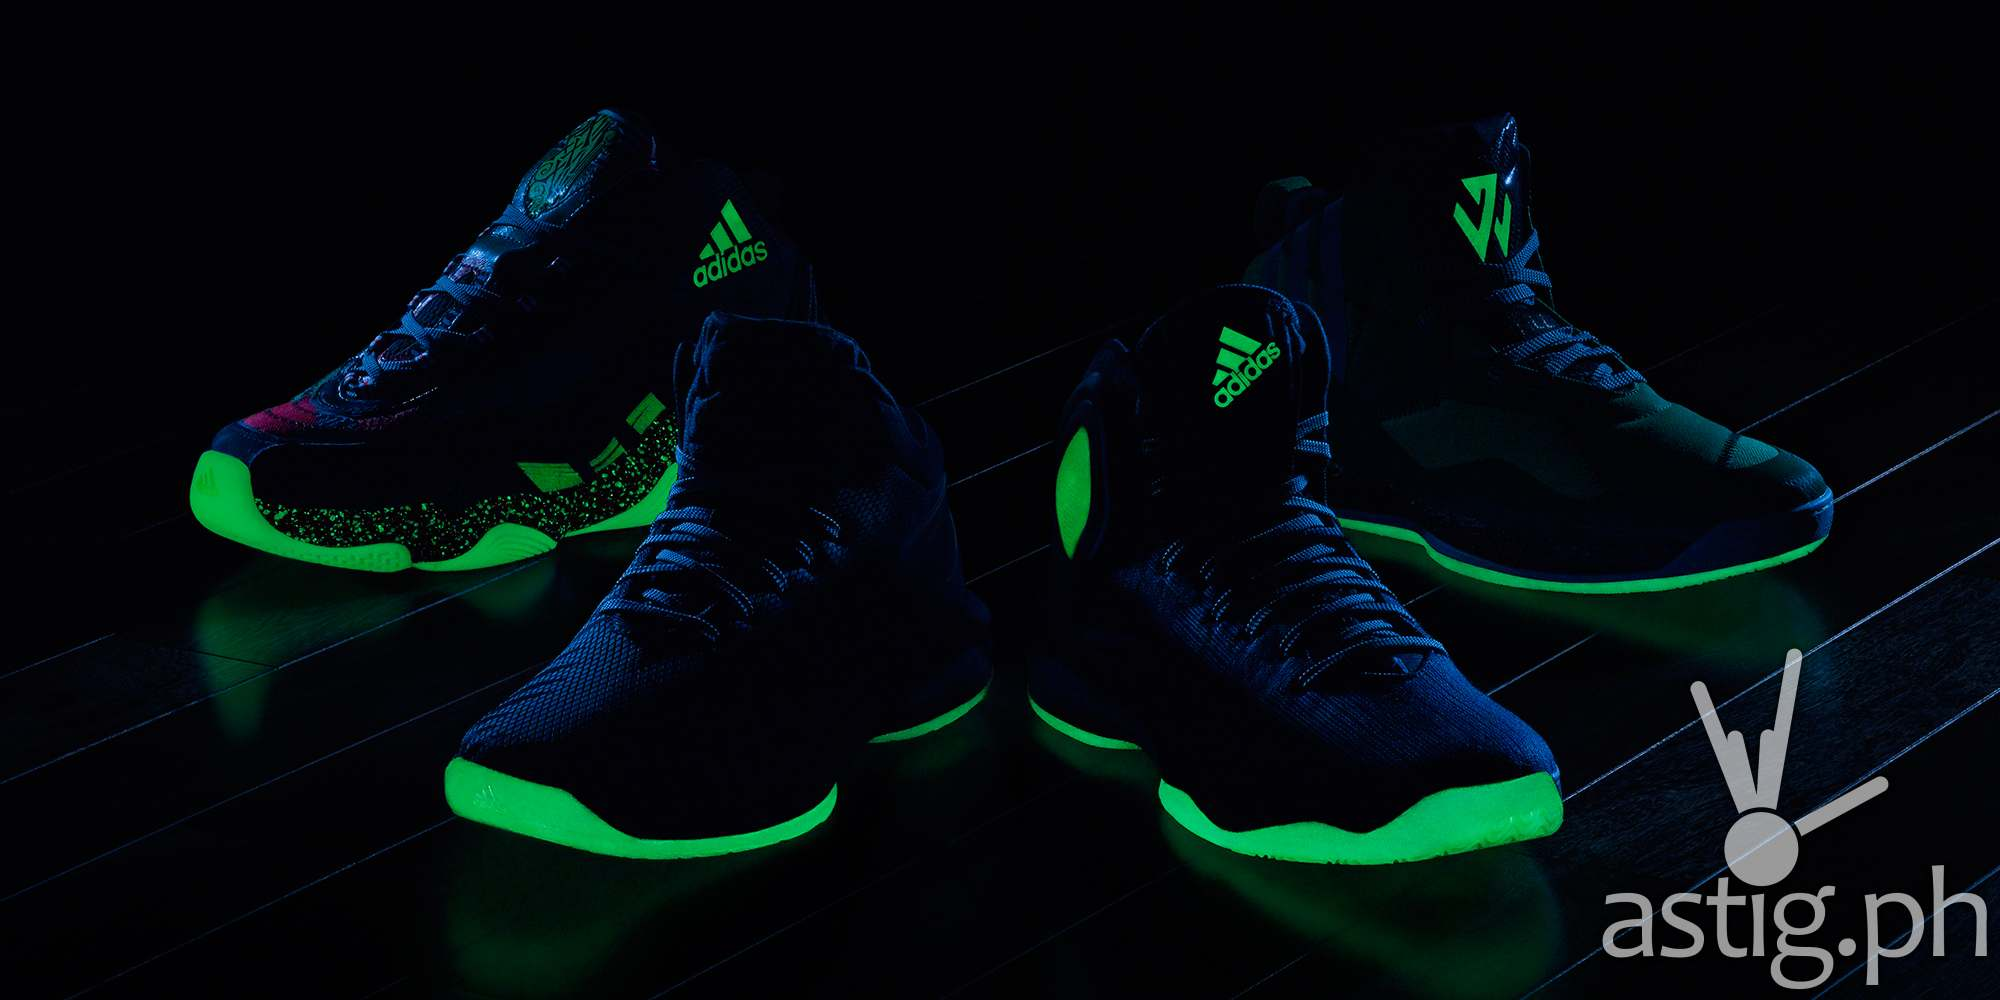 adidas Bad Dreams collection glow in the dark